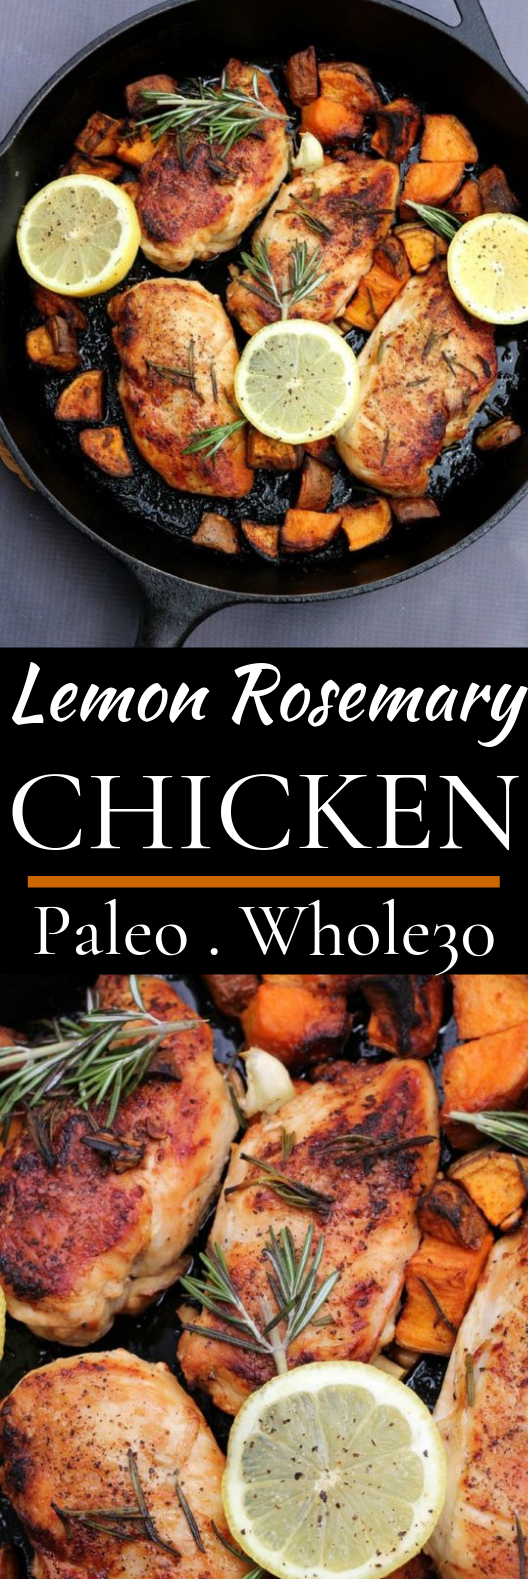 Lemon Rosemary Chicken #healthy #paleo